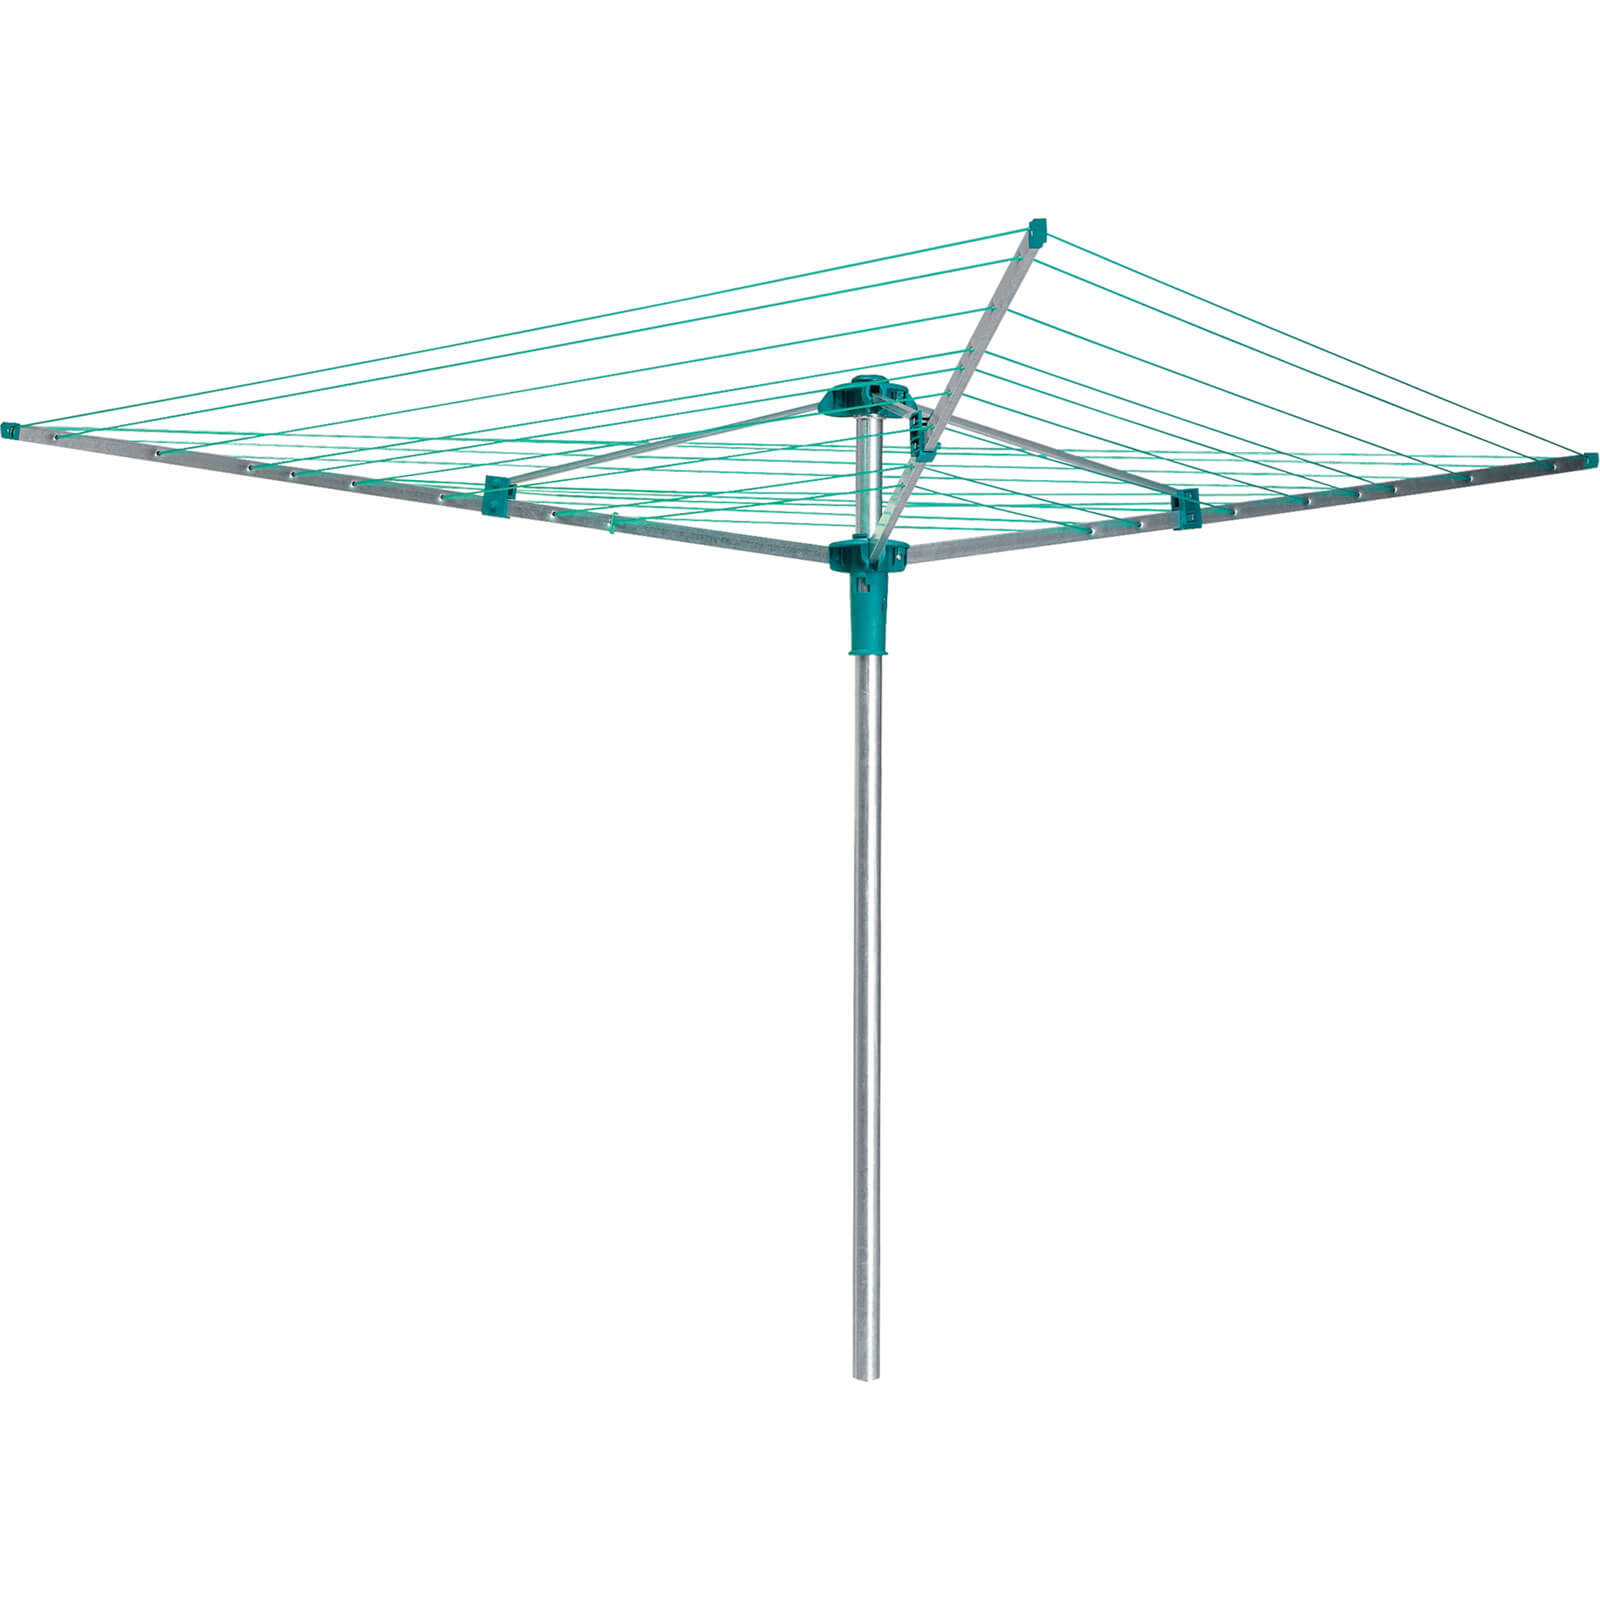 Image of Hills Industries 1455 Handiline 3 Arm Rotary Washing Line with 35m Line